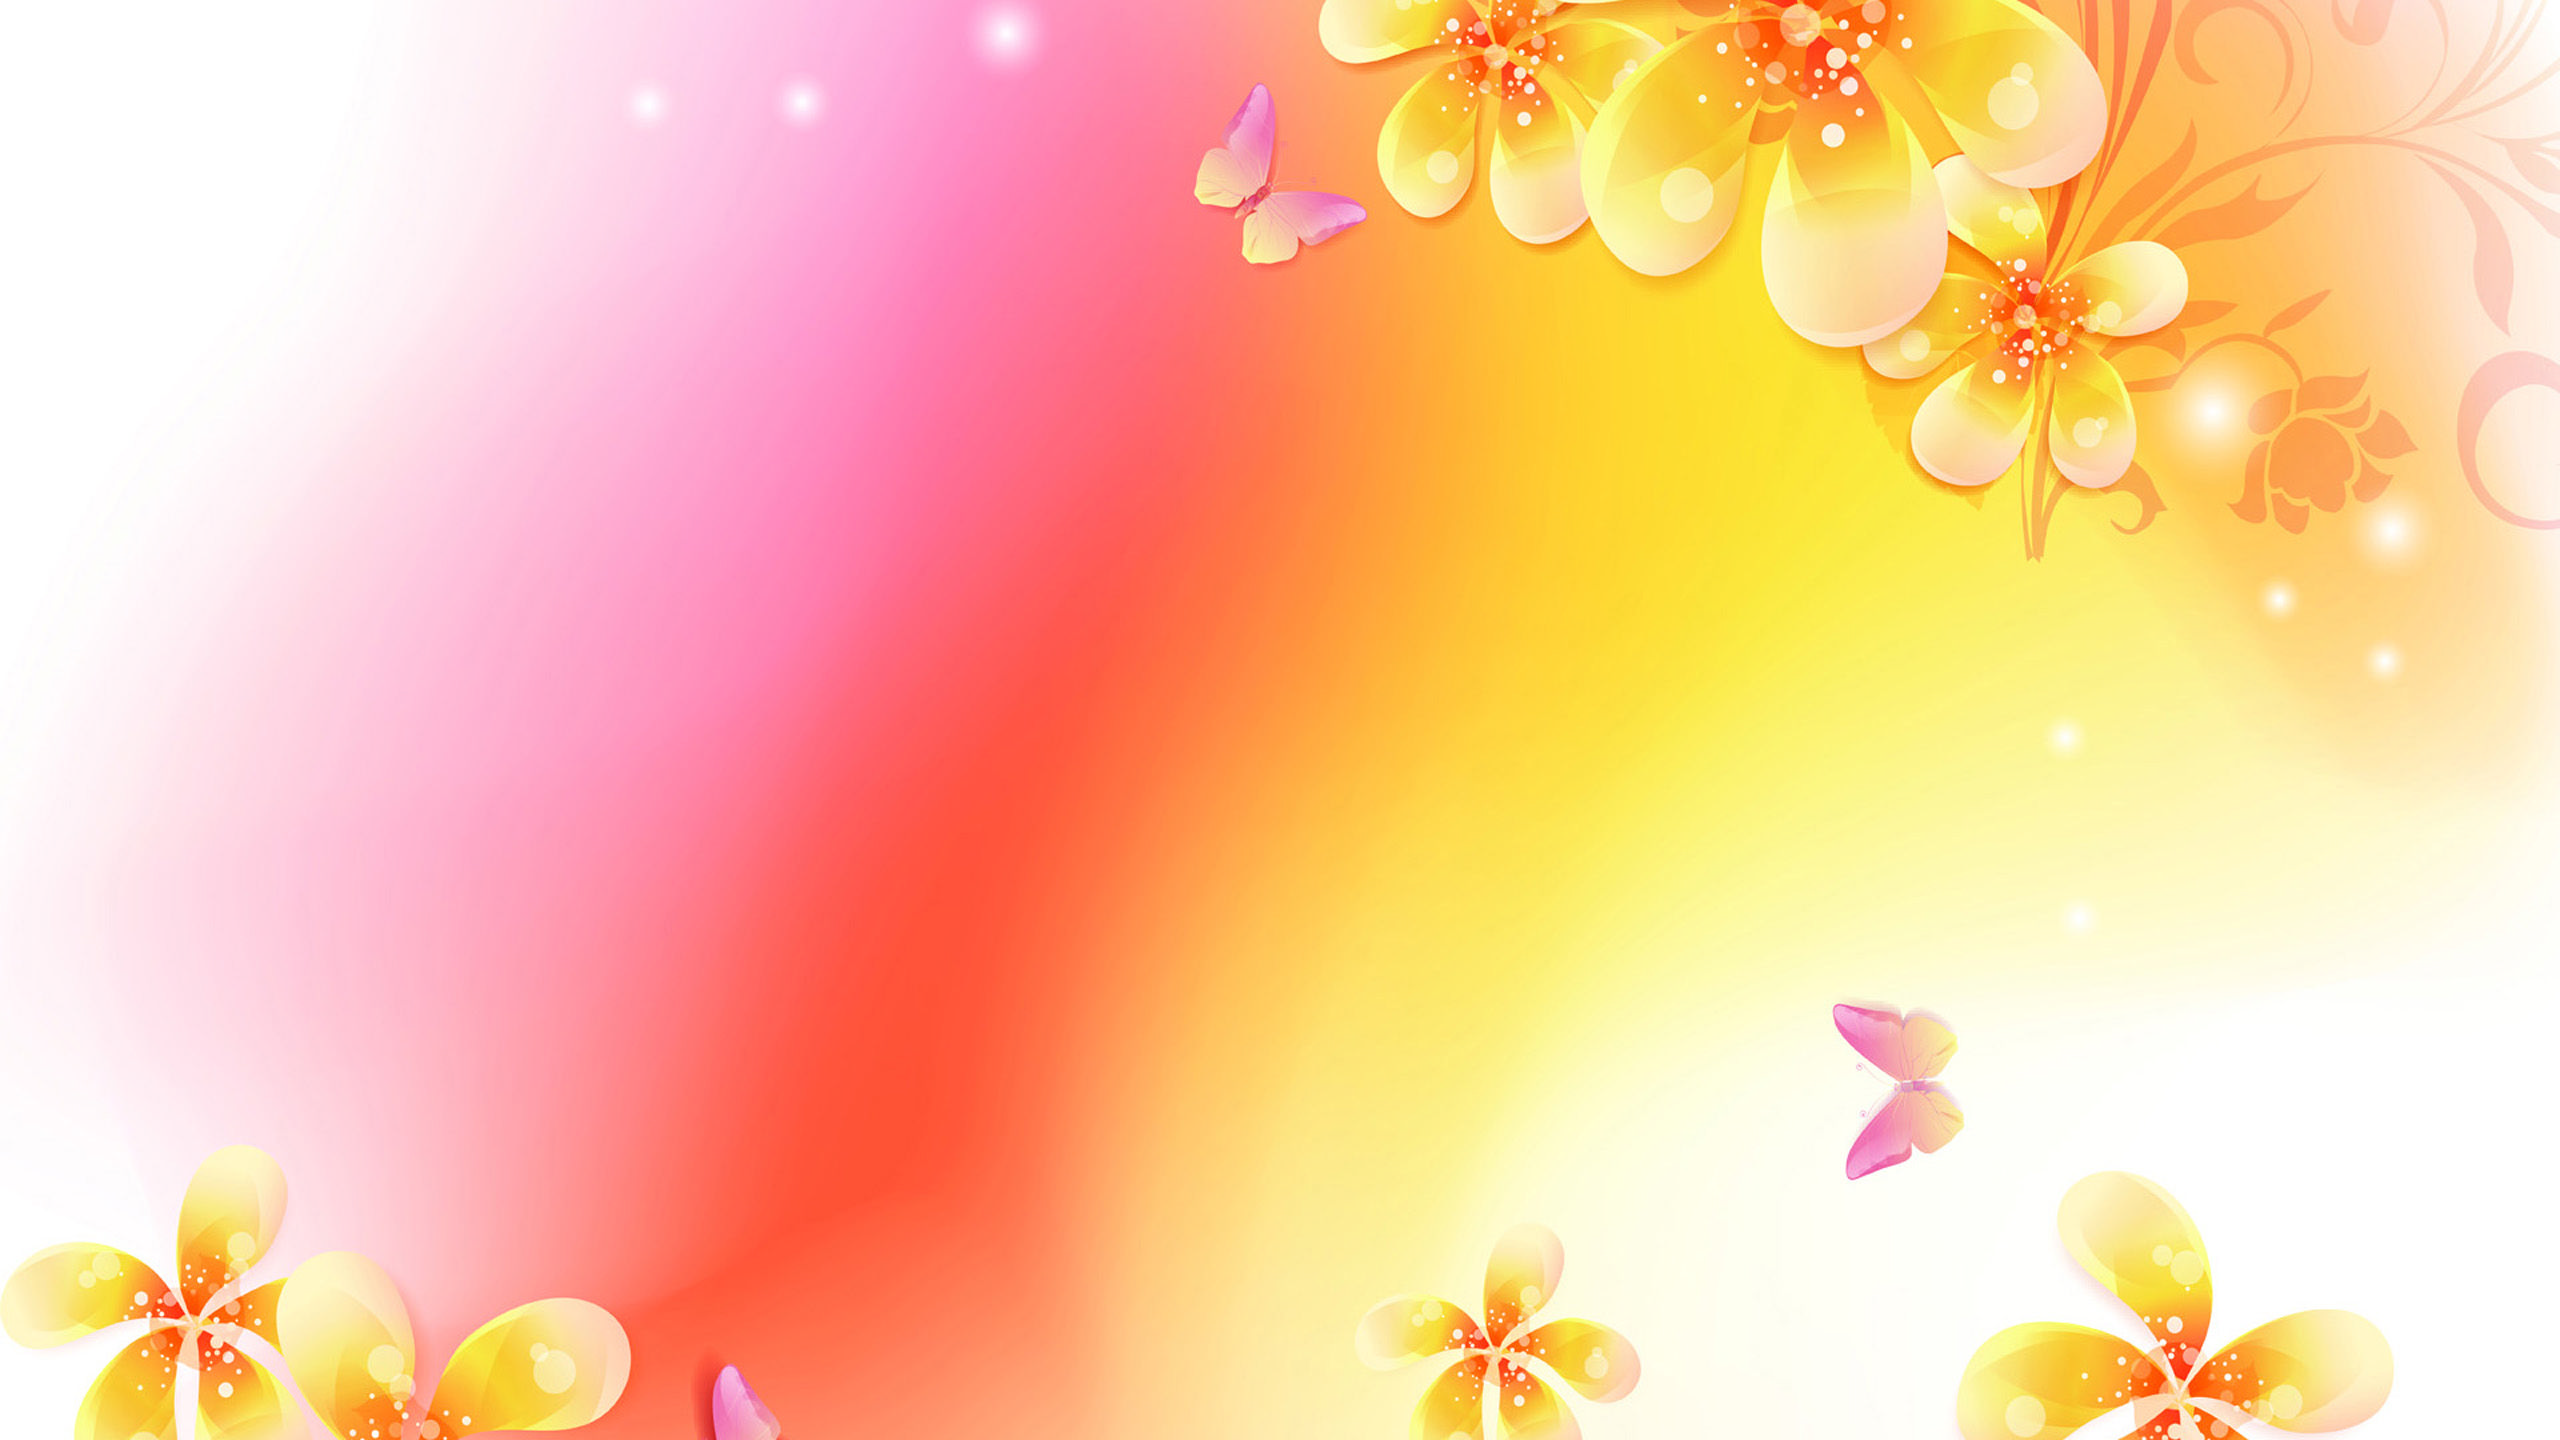 Abstract Flower Wallpapers Top Free Abstract Flower Backgrounds Wallpaperaccess